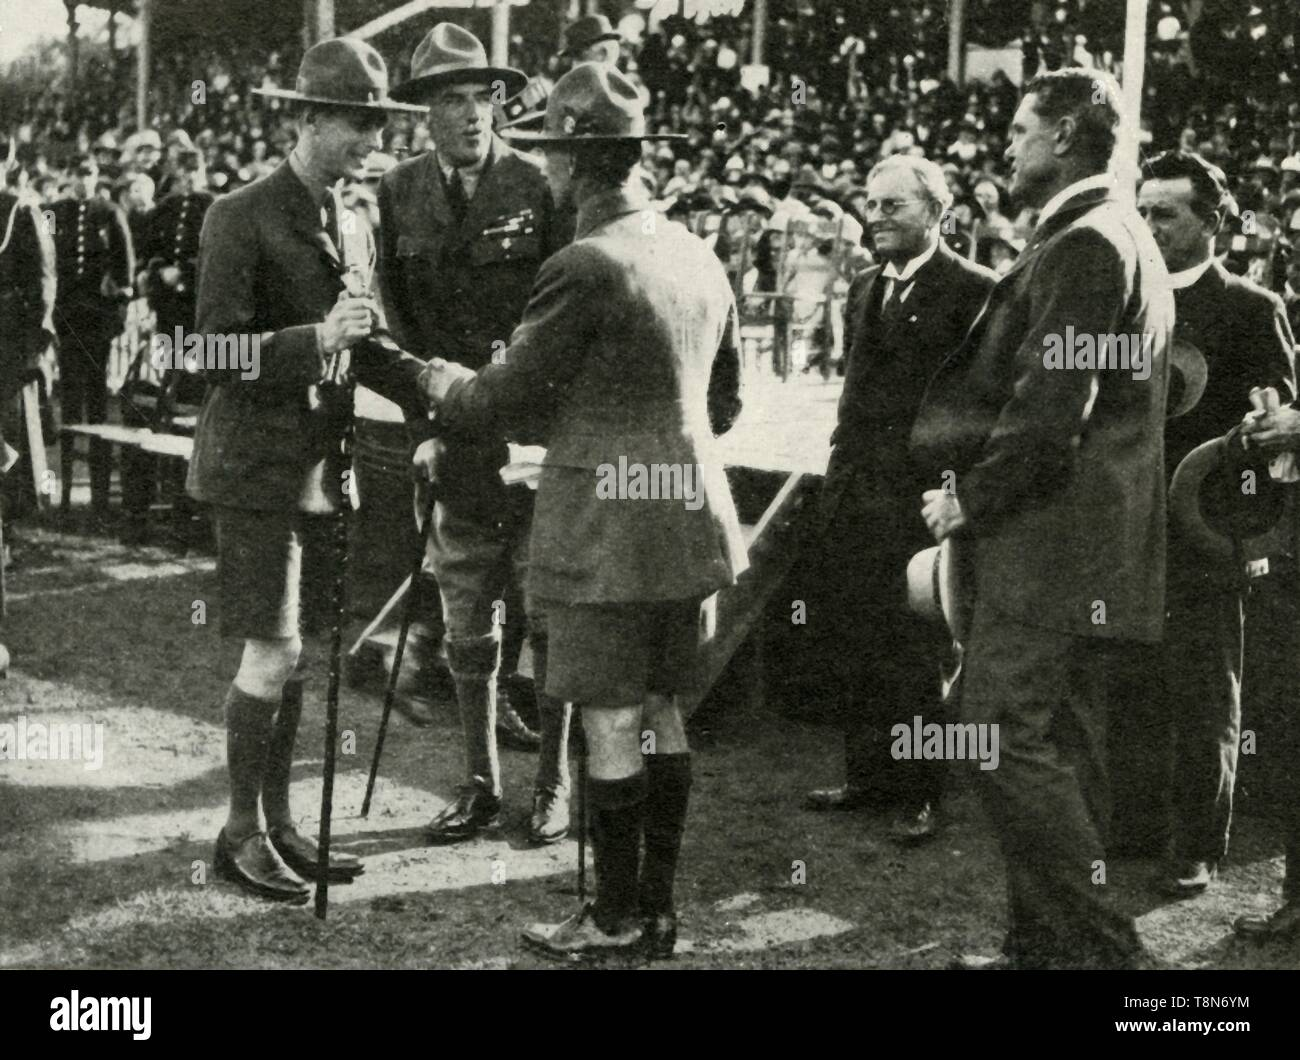 """'At the Parade of Boy Scouts and Girl Guides, Adelaide, Australia: The King gives the Scout Handshake, 1927', 1937. His Royal Highness The Duke of York 1920-1936 became King George VI on 11 December 1936. From """"George VI, King and Emperor"""", by Major J. T. Gorman [W. & G. Foyle Ltd., London, 1937] - Stock Image"""